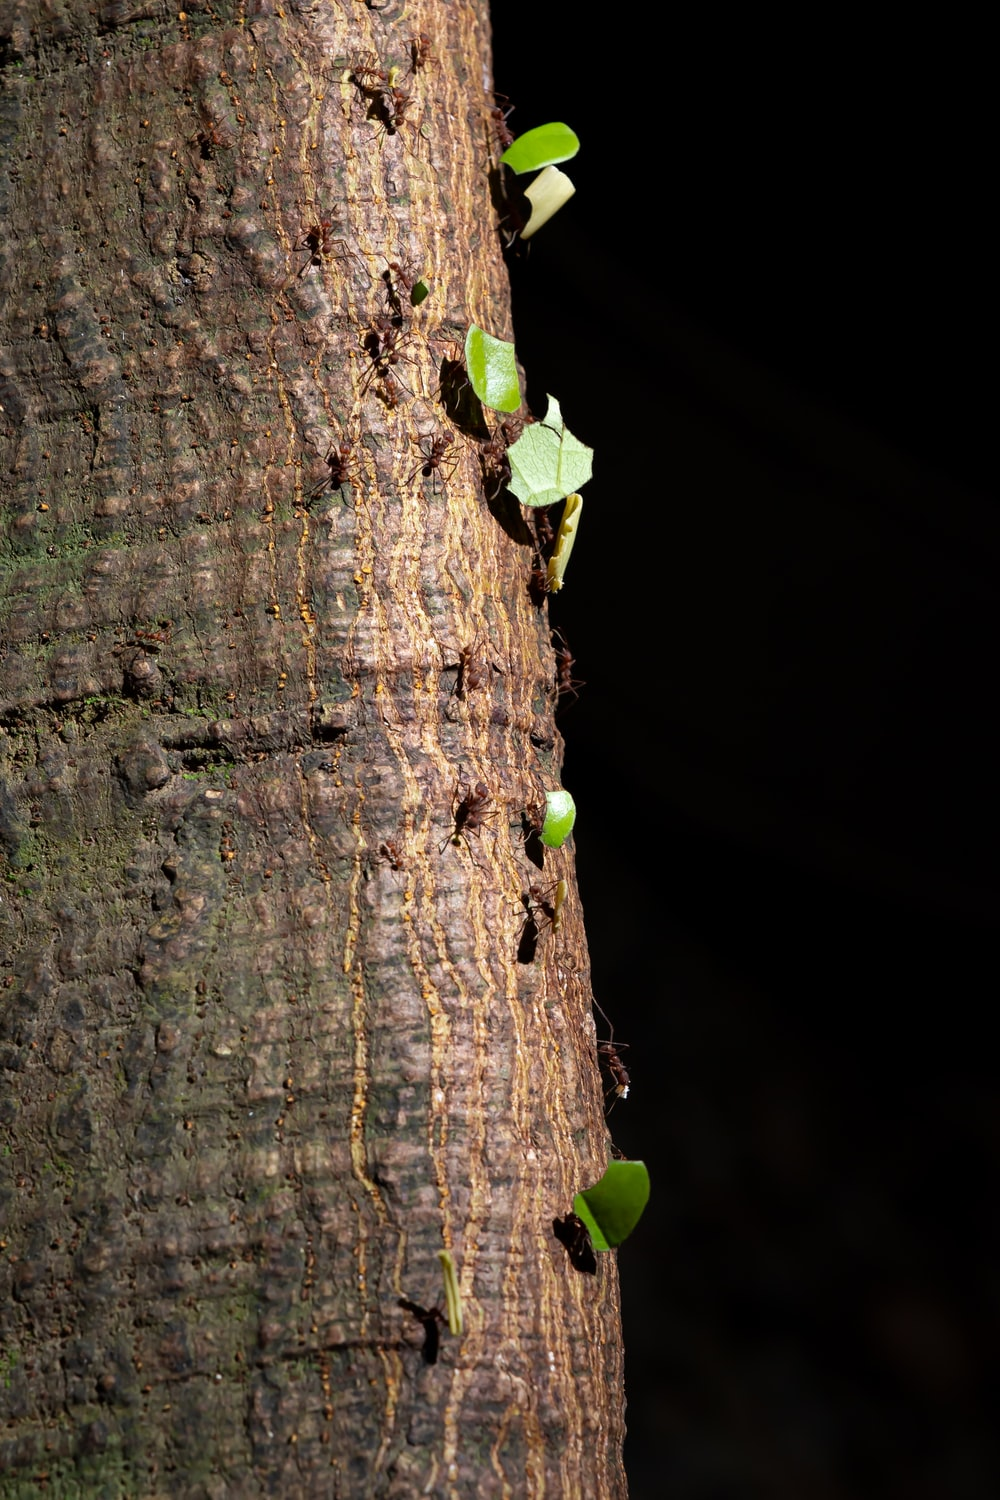 green fruit on brown tree trunk